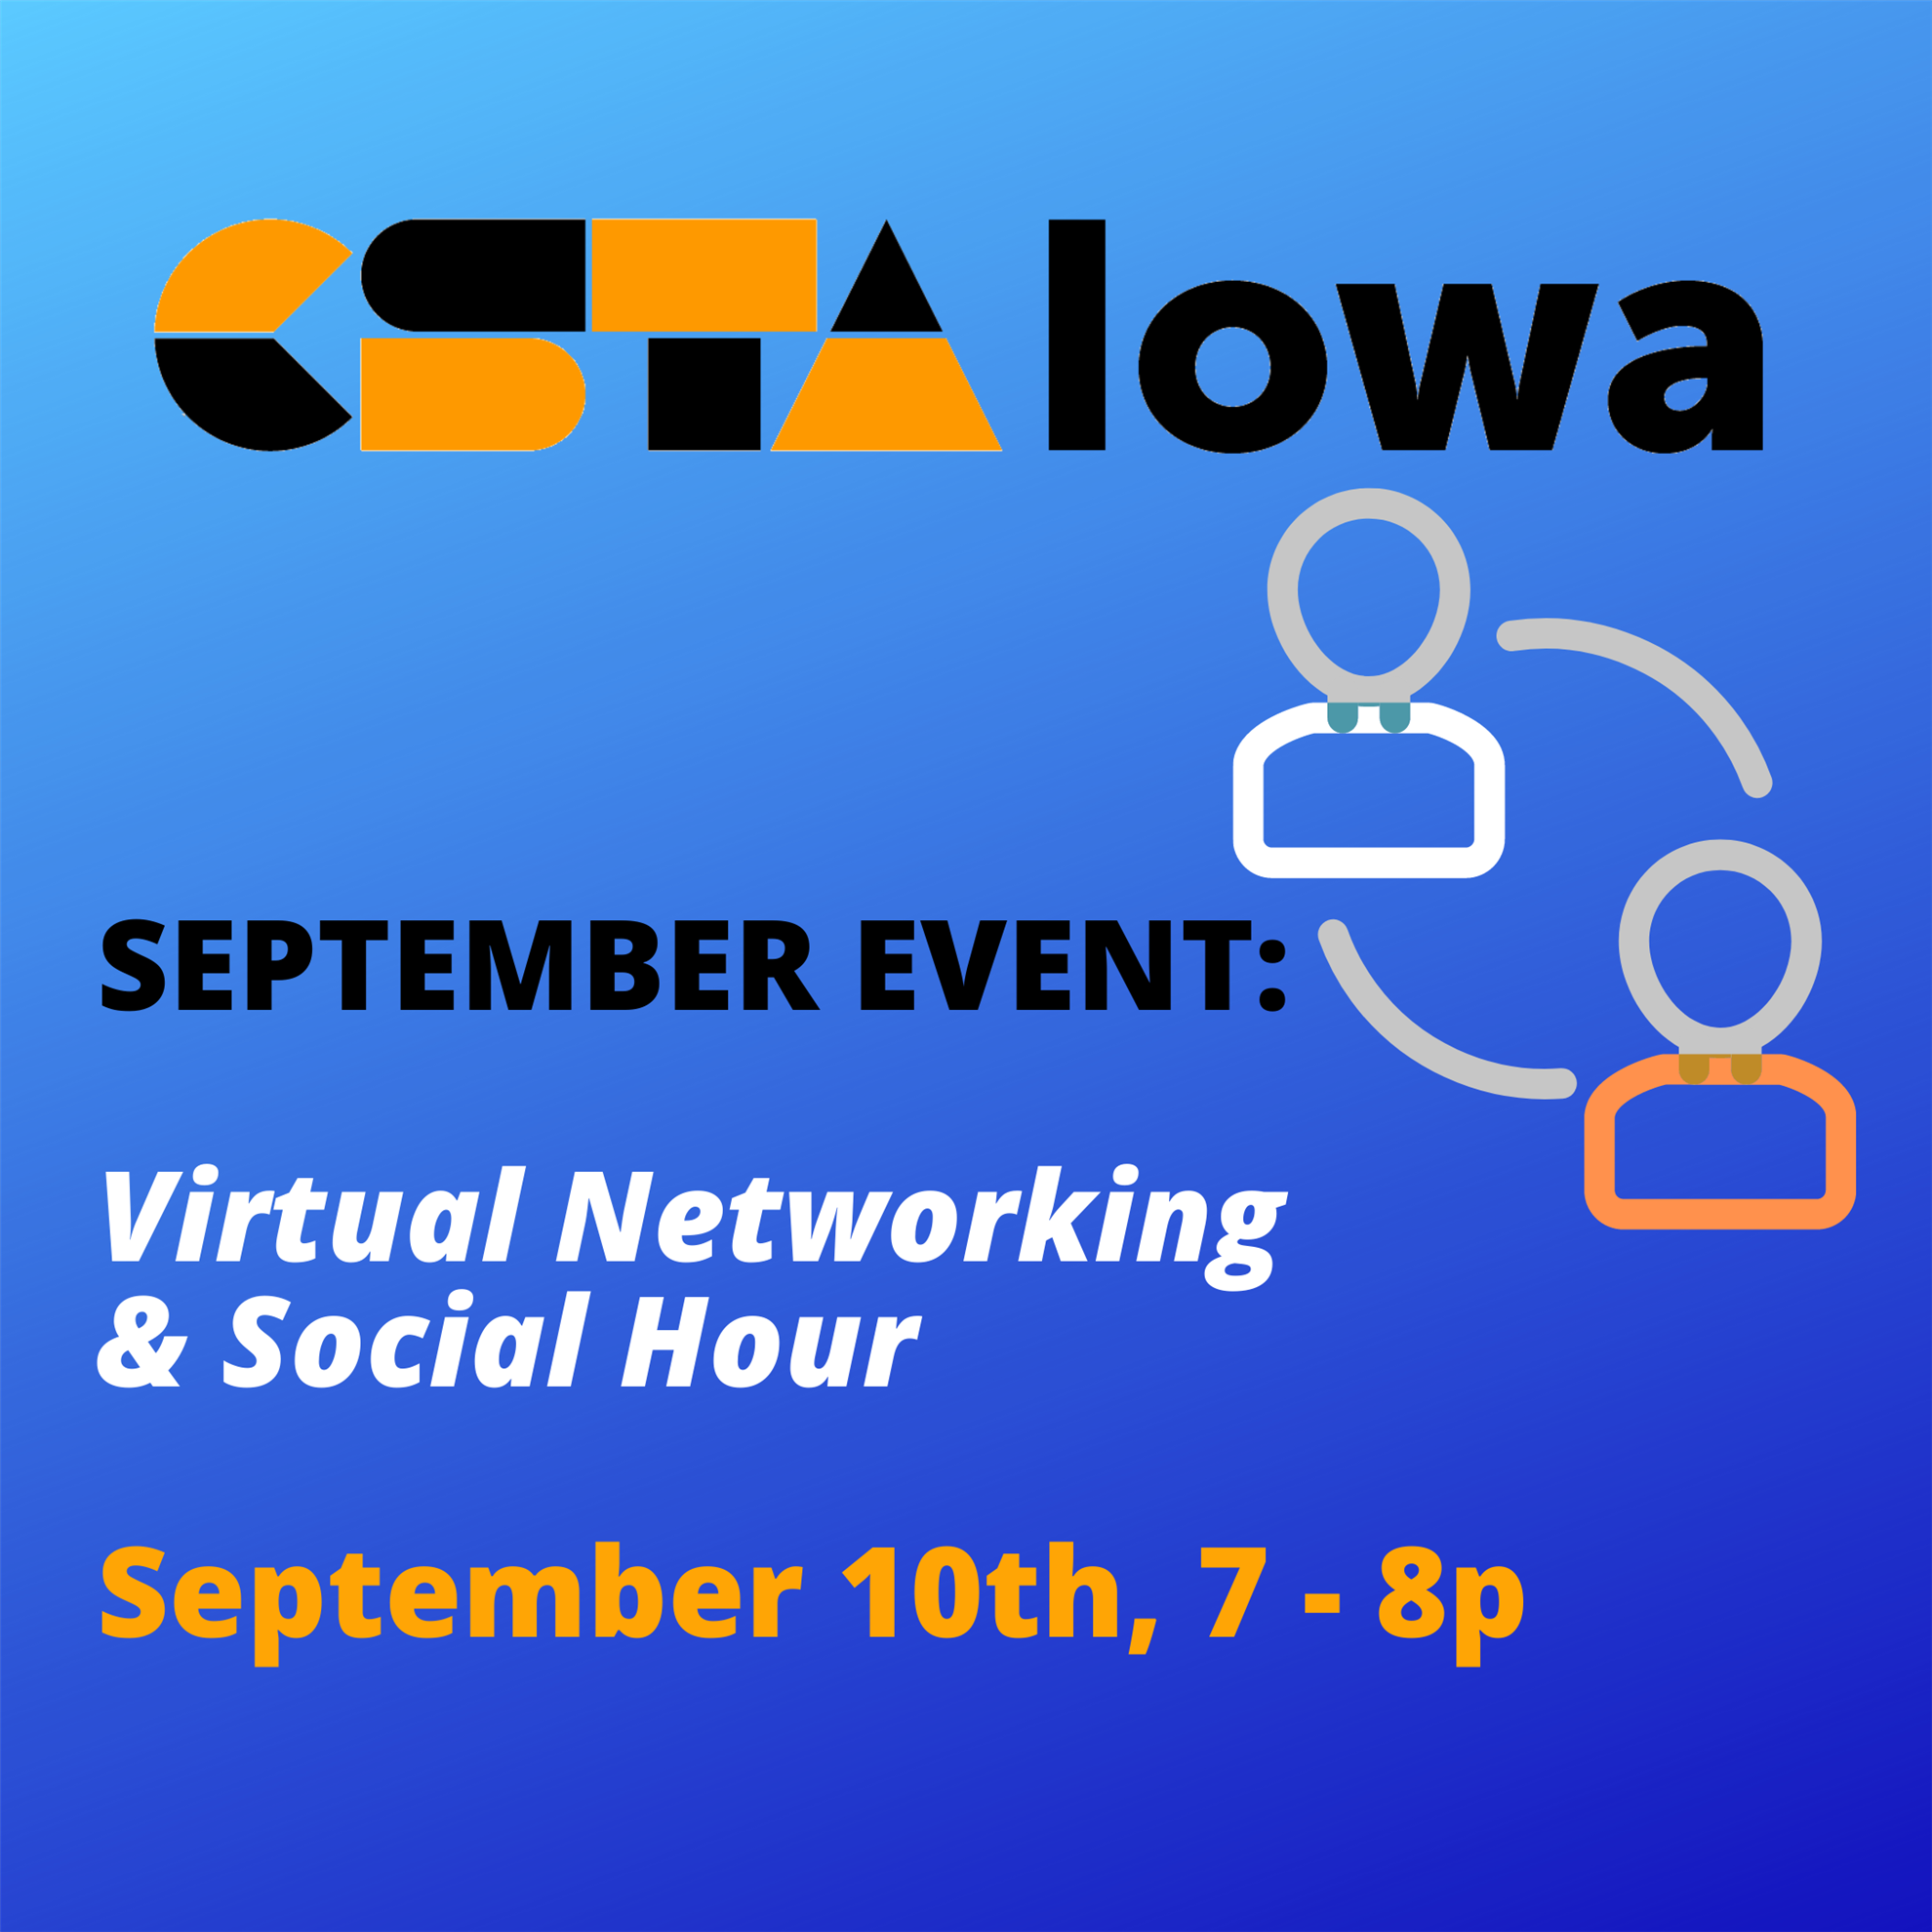 CSTA Iowa September 2020 Virtual Networking & Social Hour (CSTA Iowa)